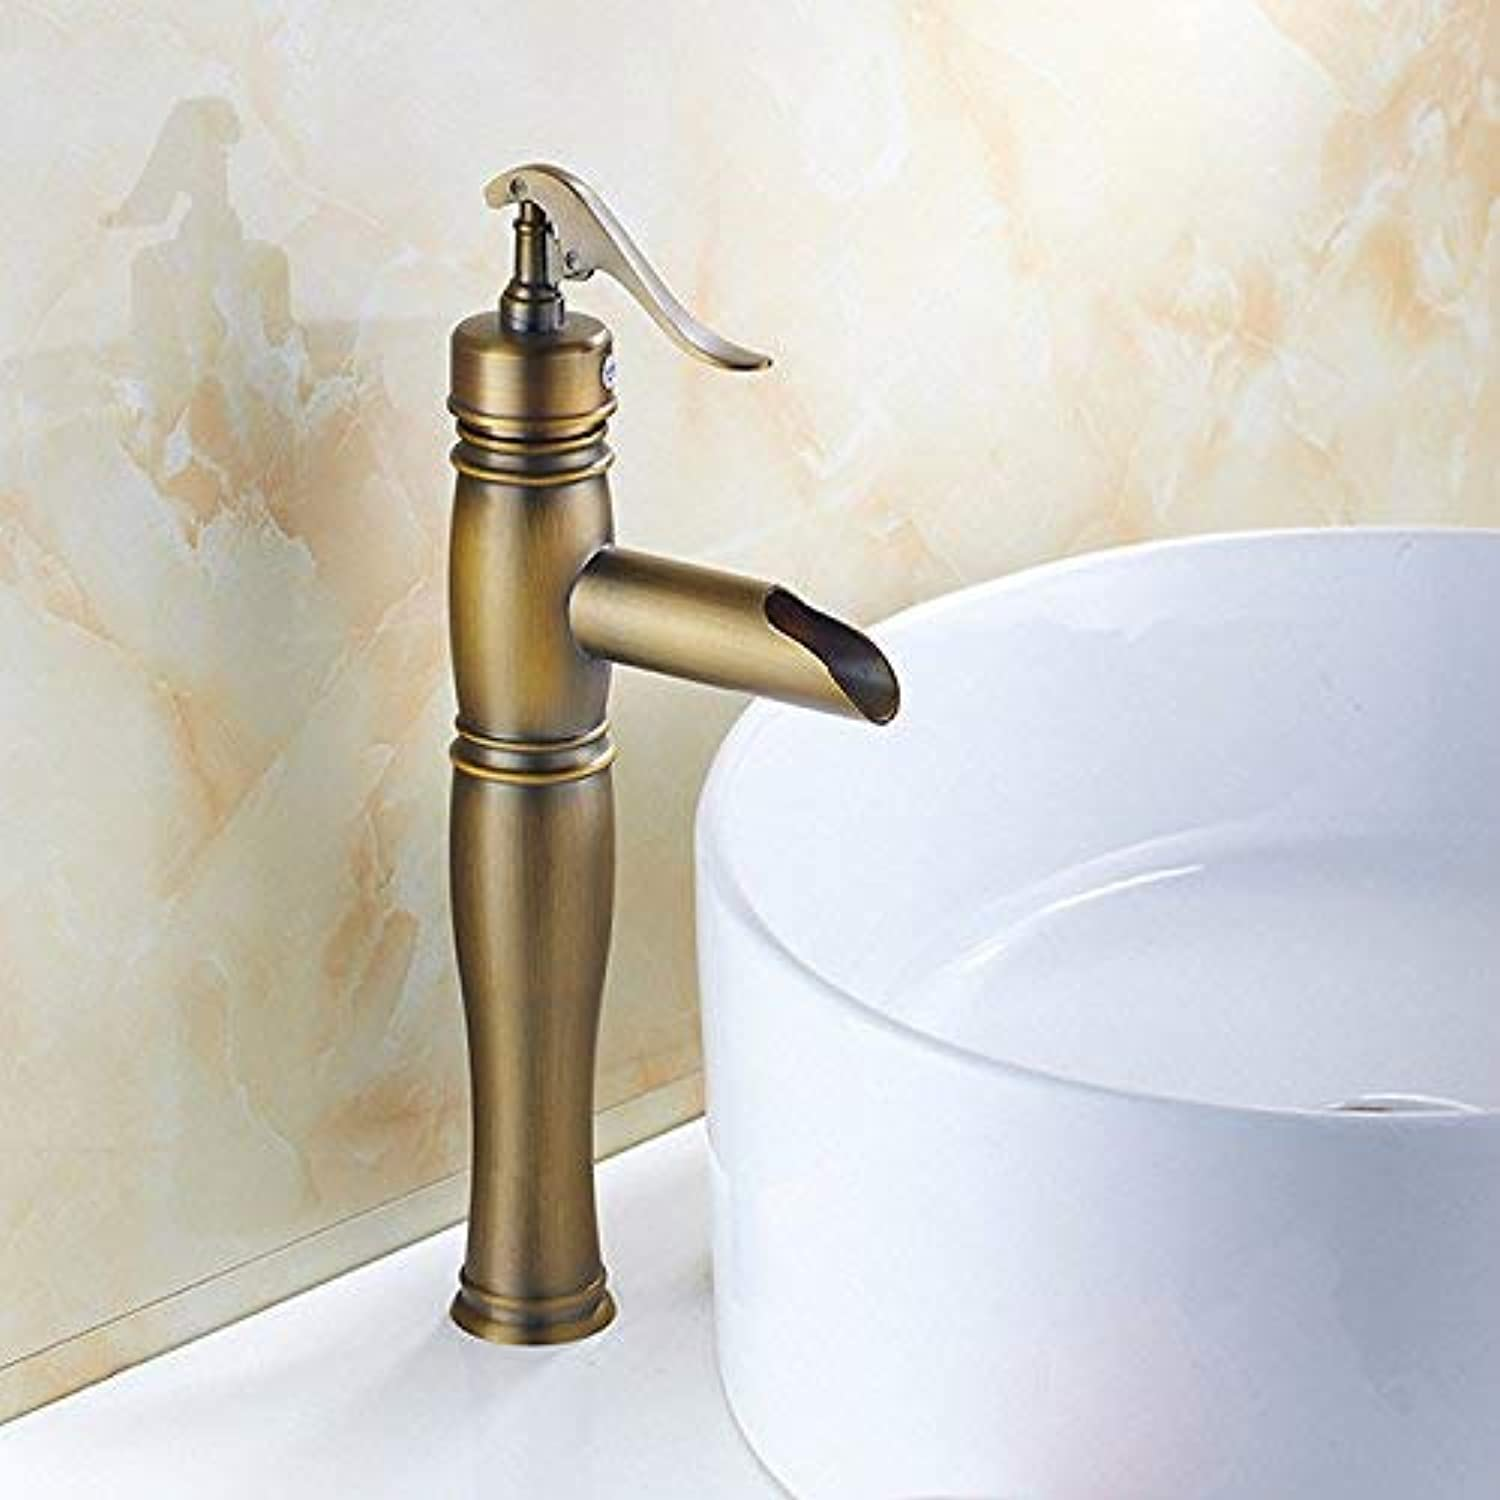 Oudan Basin Mixer Tap Bathroom Sink Faucet Antique Basin Faucet 39 (color   27)